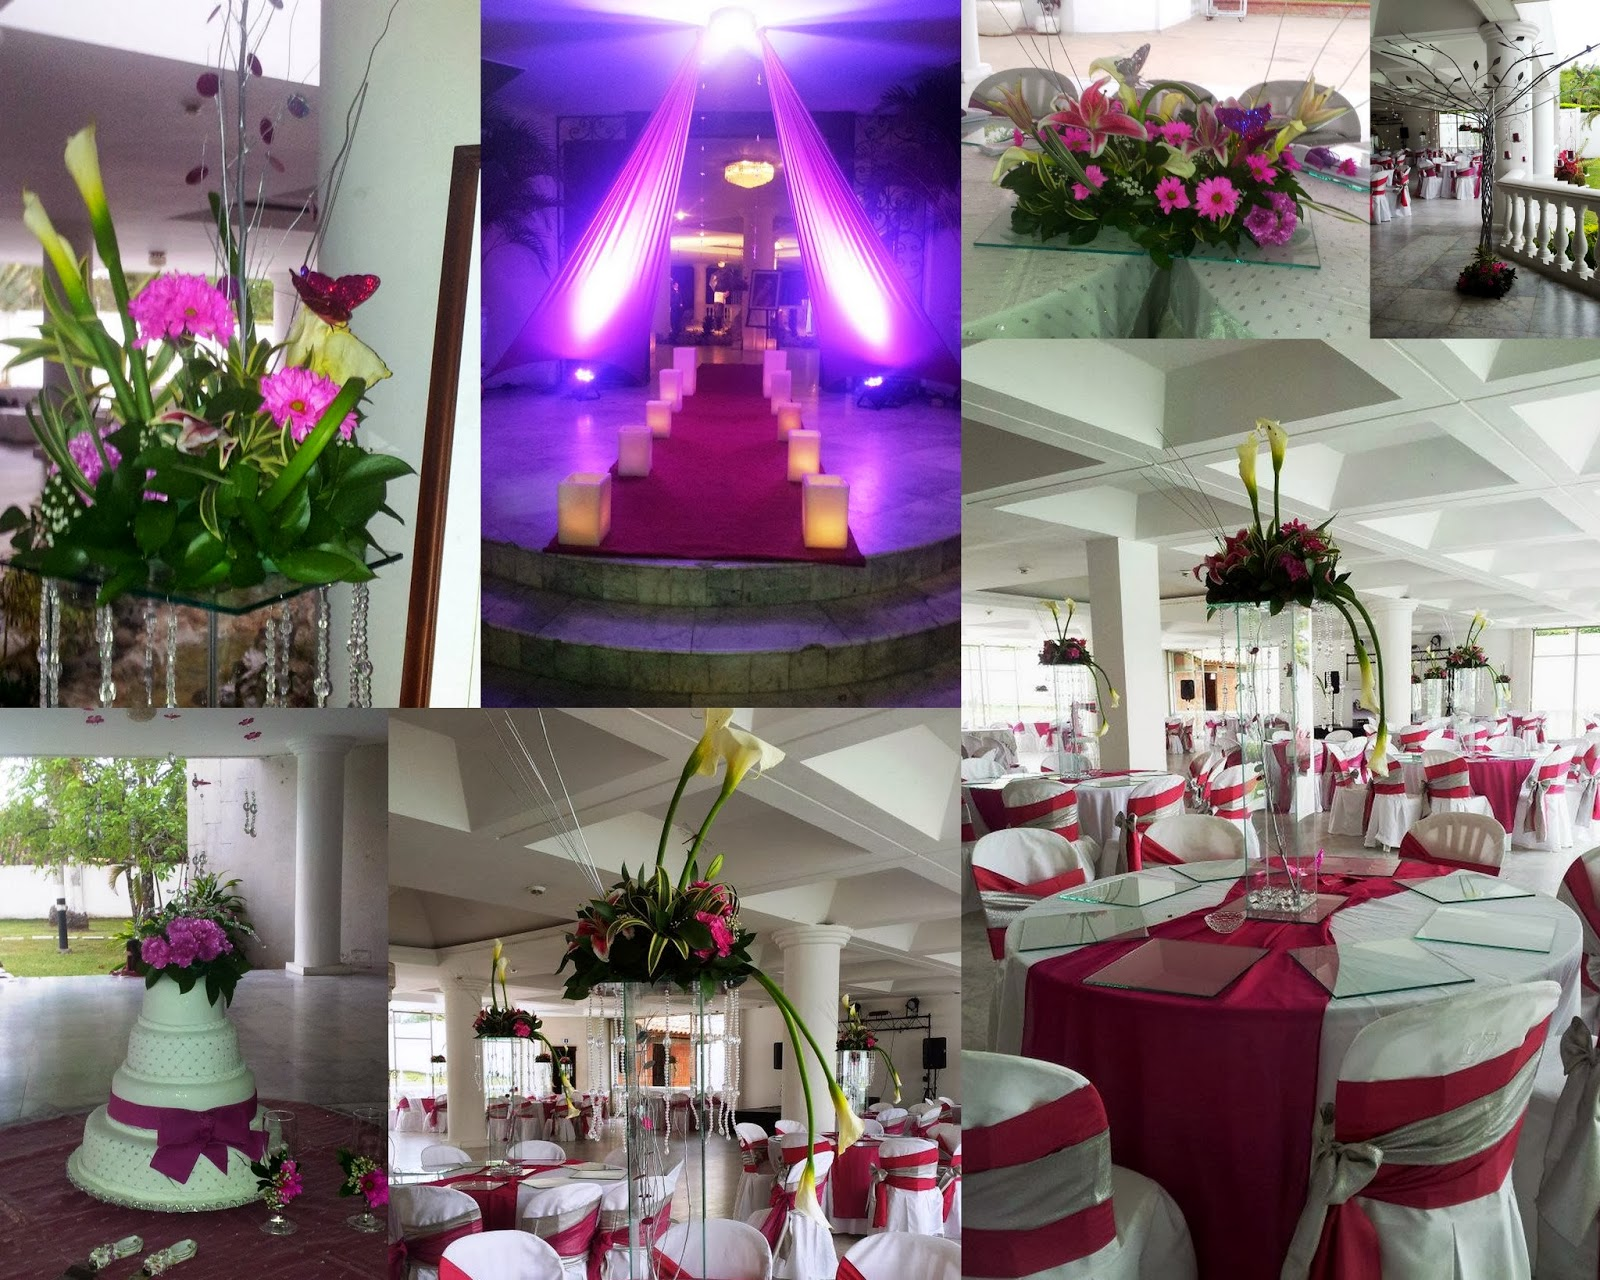 Decoraci n evento para quince a os fiori bella colombia for Decoracion quince anos